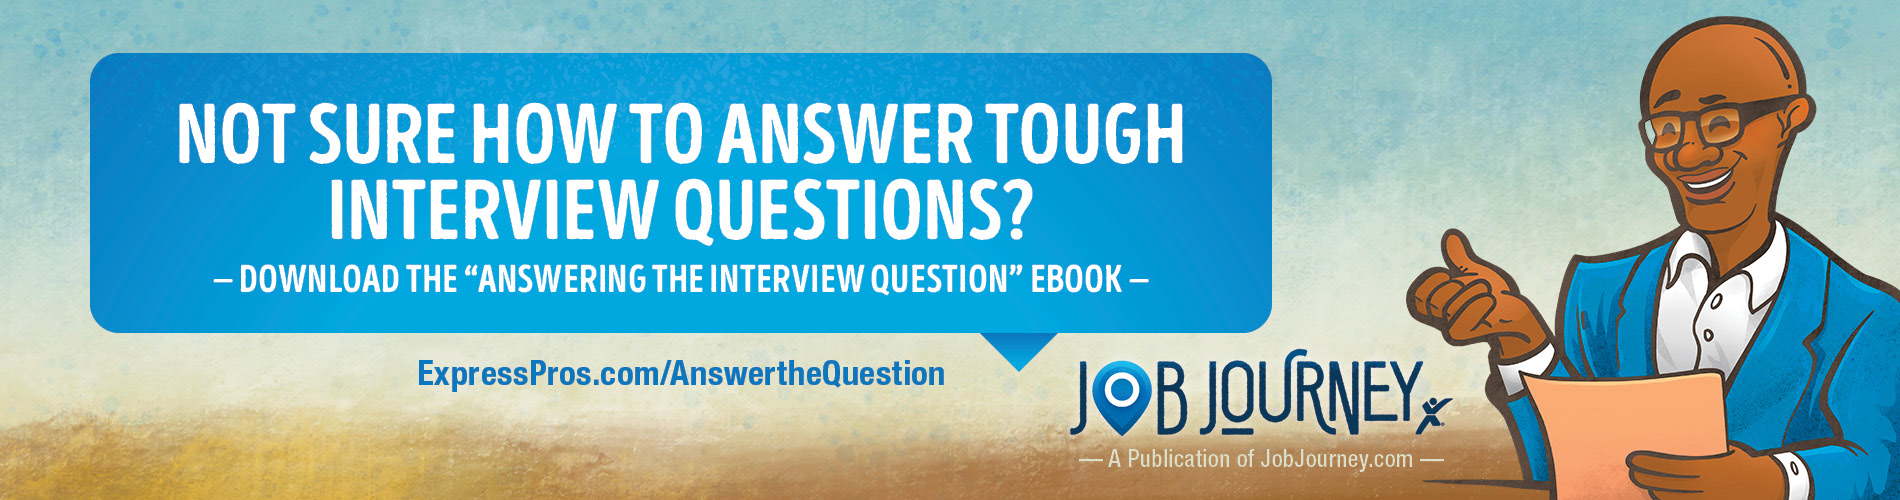 Express Jobs - Answering the Interview Question eBook